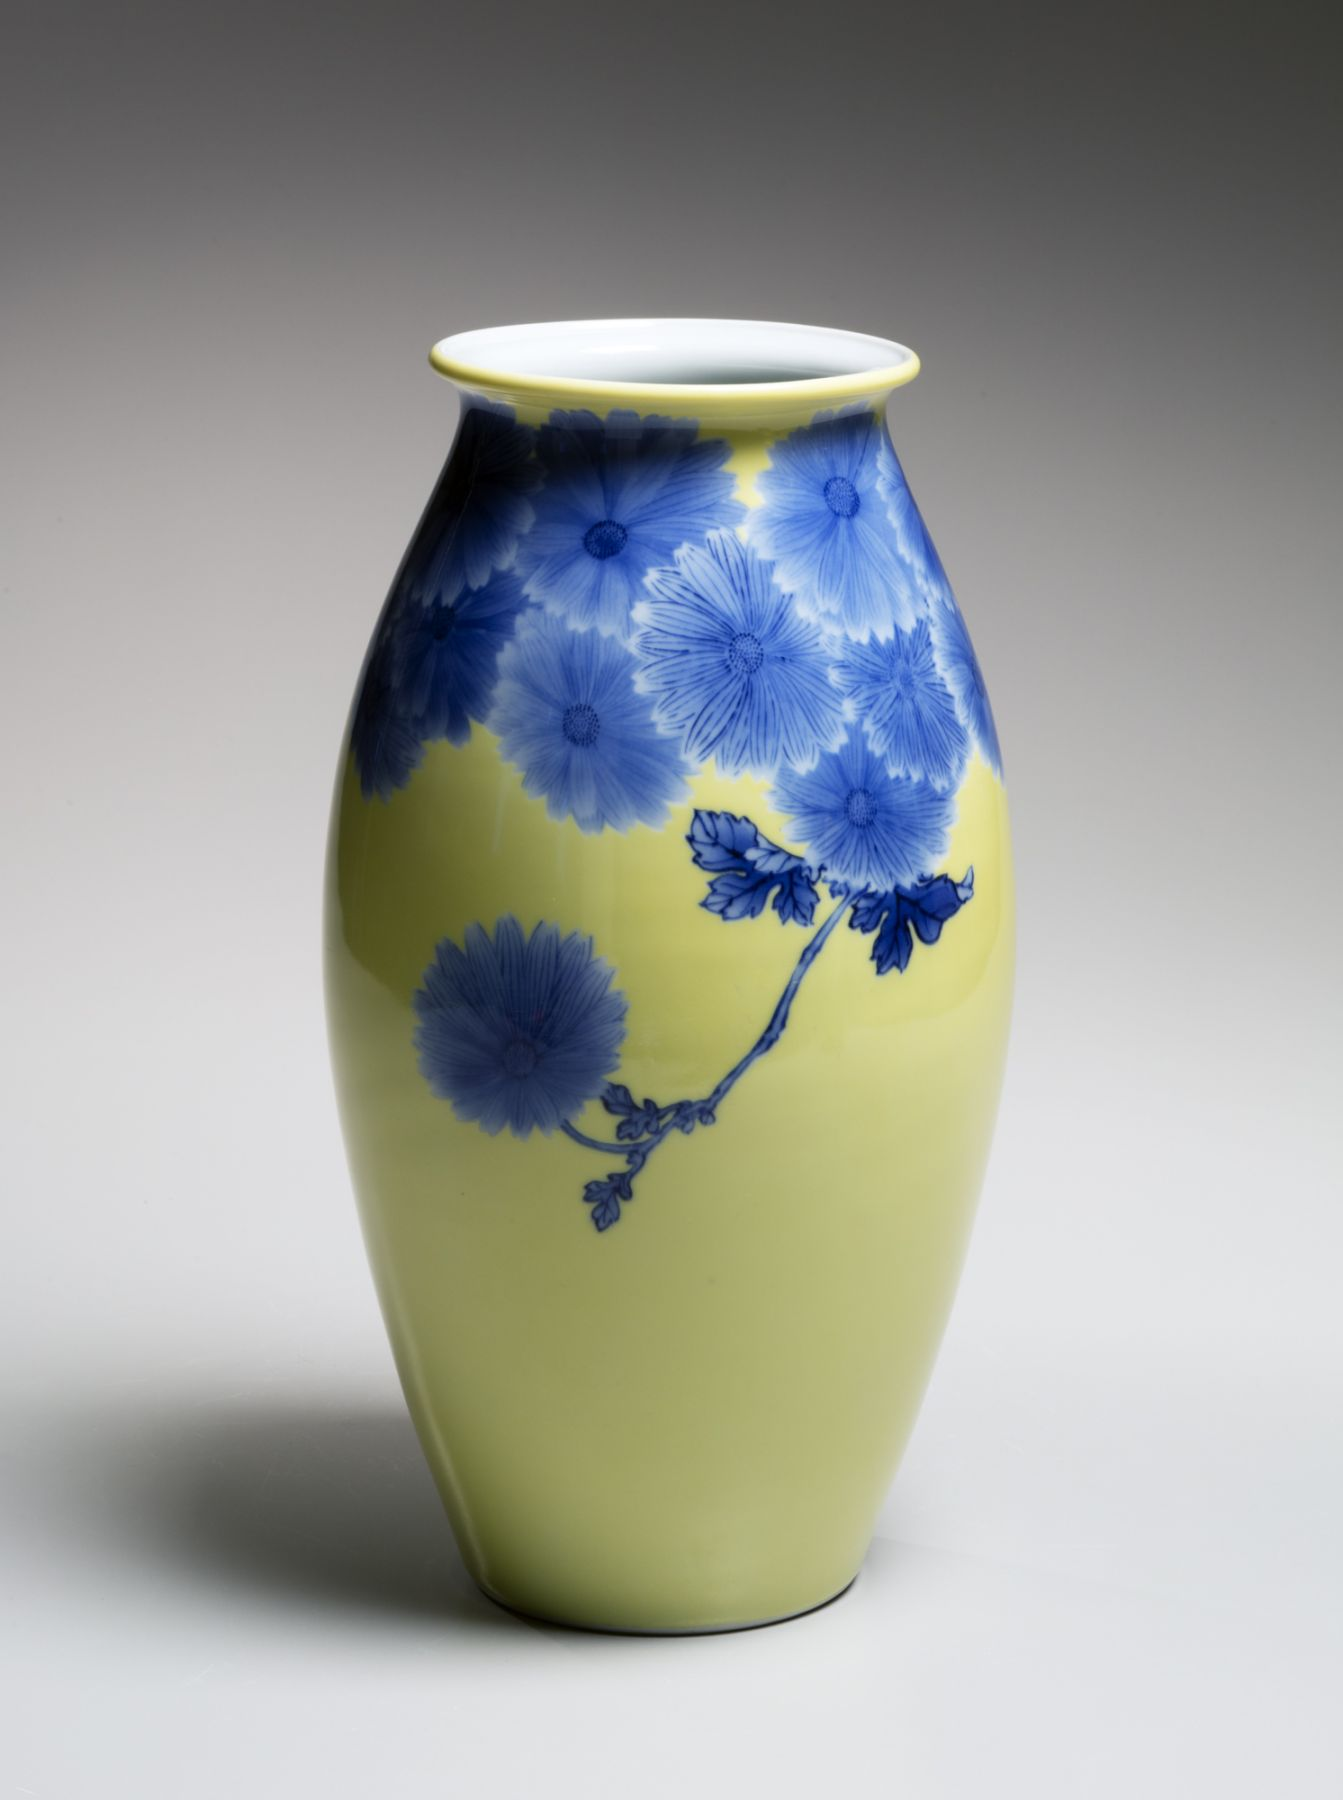 Makuzu Kōzan II (1856-1940), Yellow-glazed standing vase with flared mouth and chrysanthemum design in blue